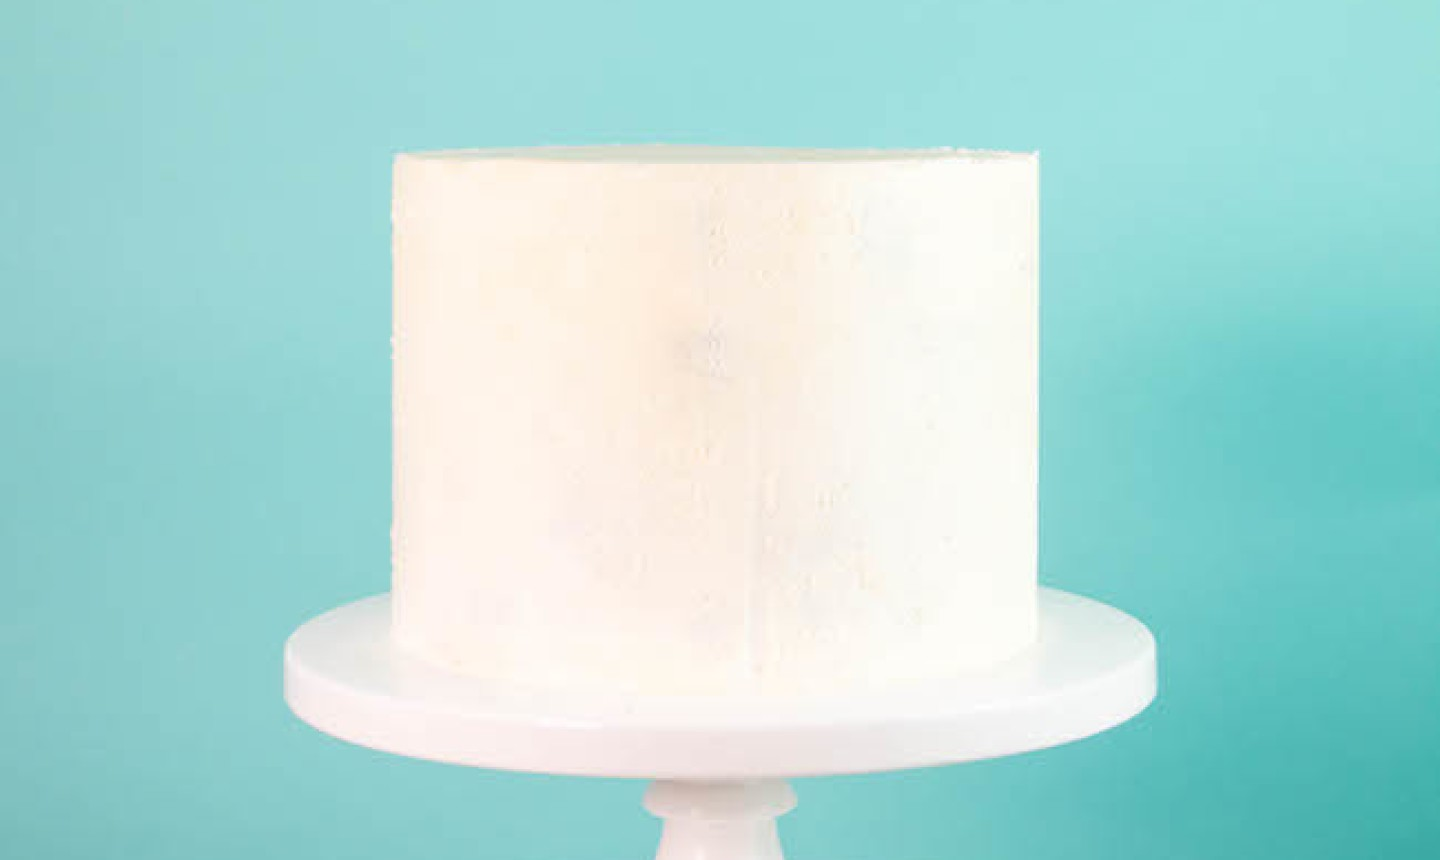 Cake with white frosting on a pedestal